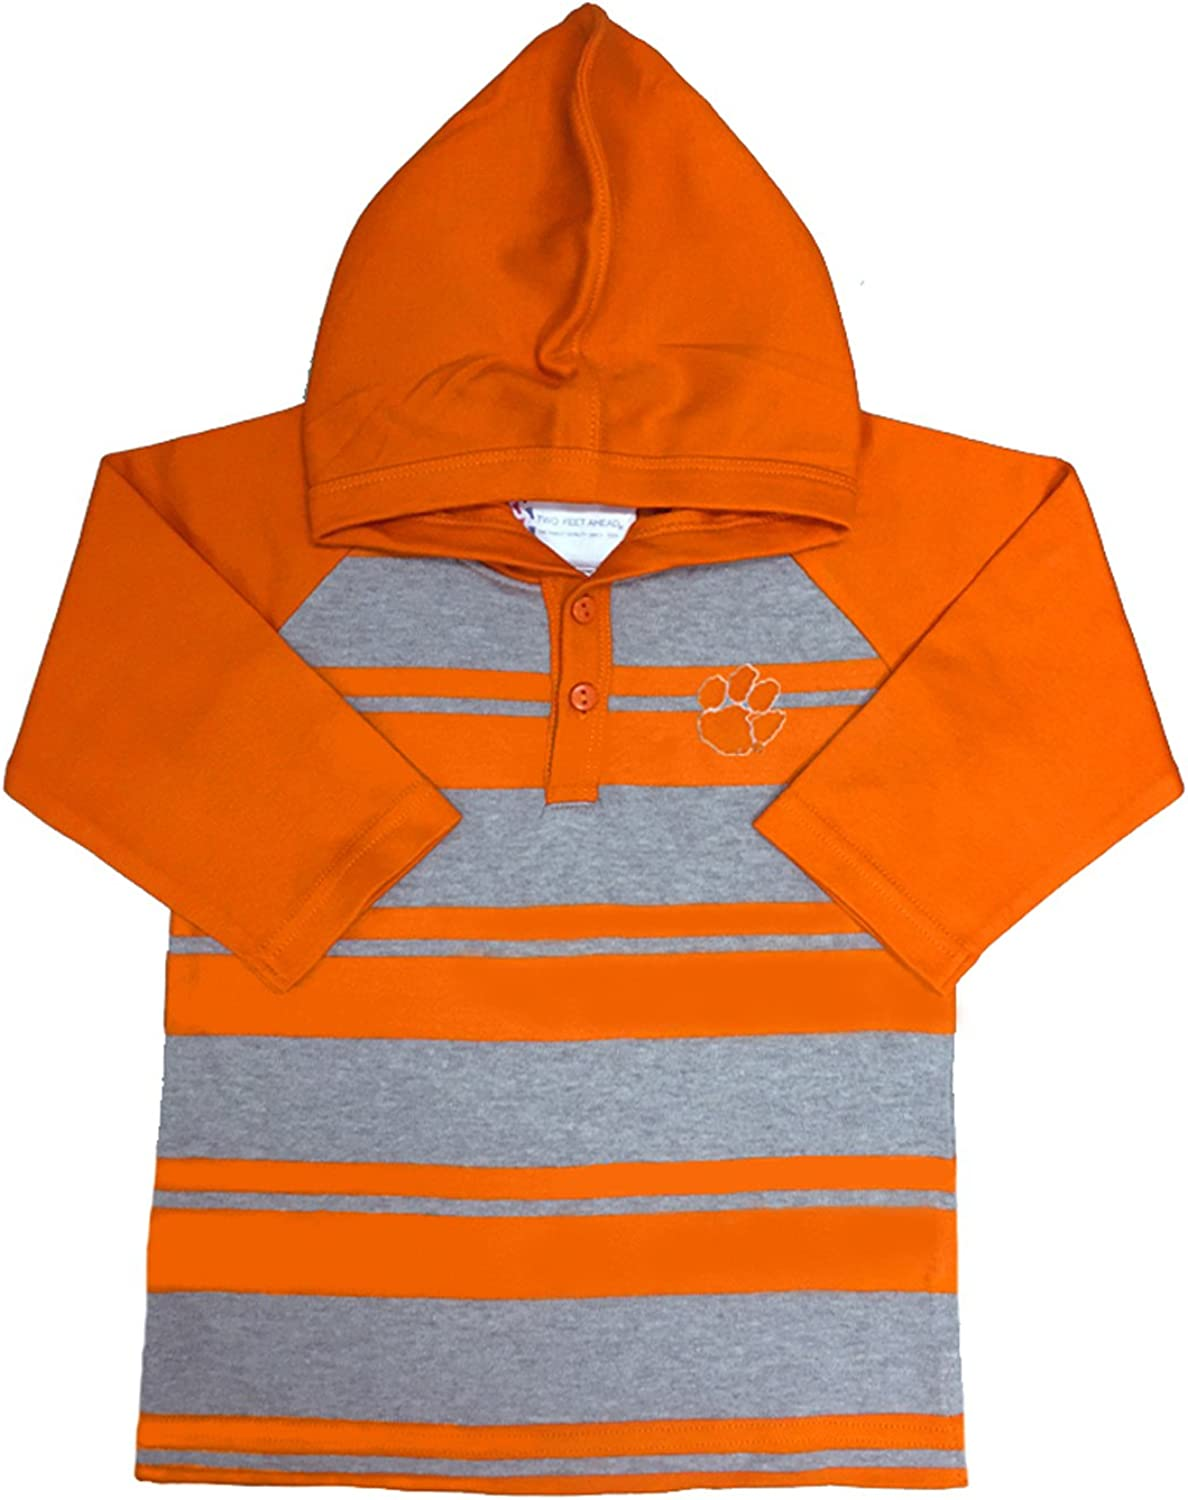 4T Two Feet Ahead NCAA Oklahoma State Cowboys Toddler Rugby Long Sleeve Hooded Shirt